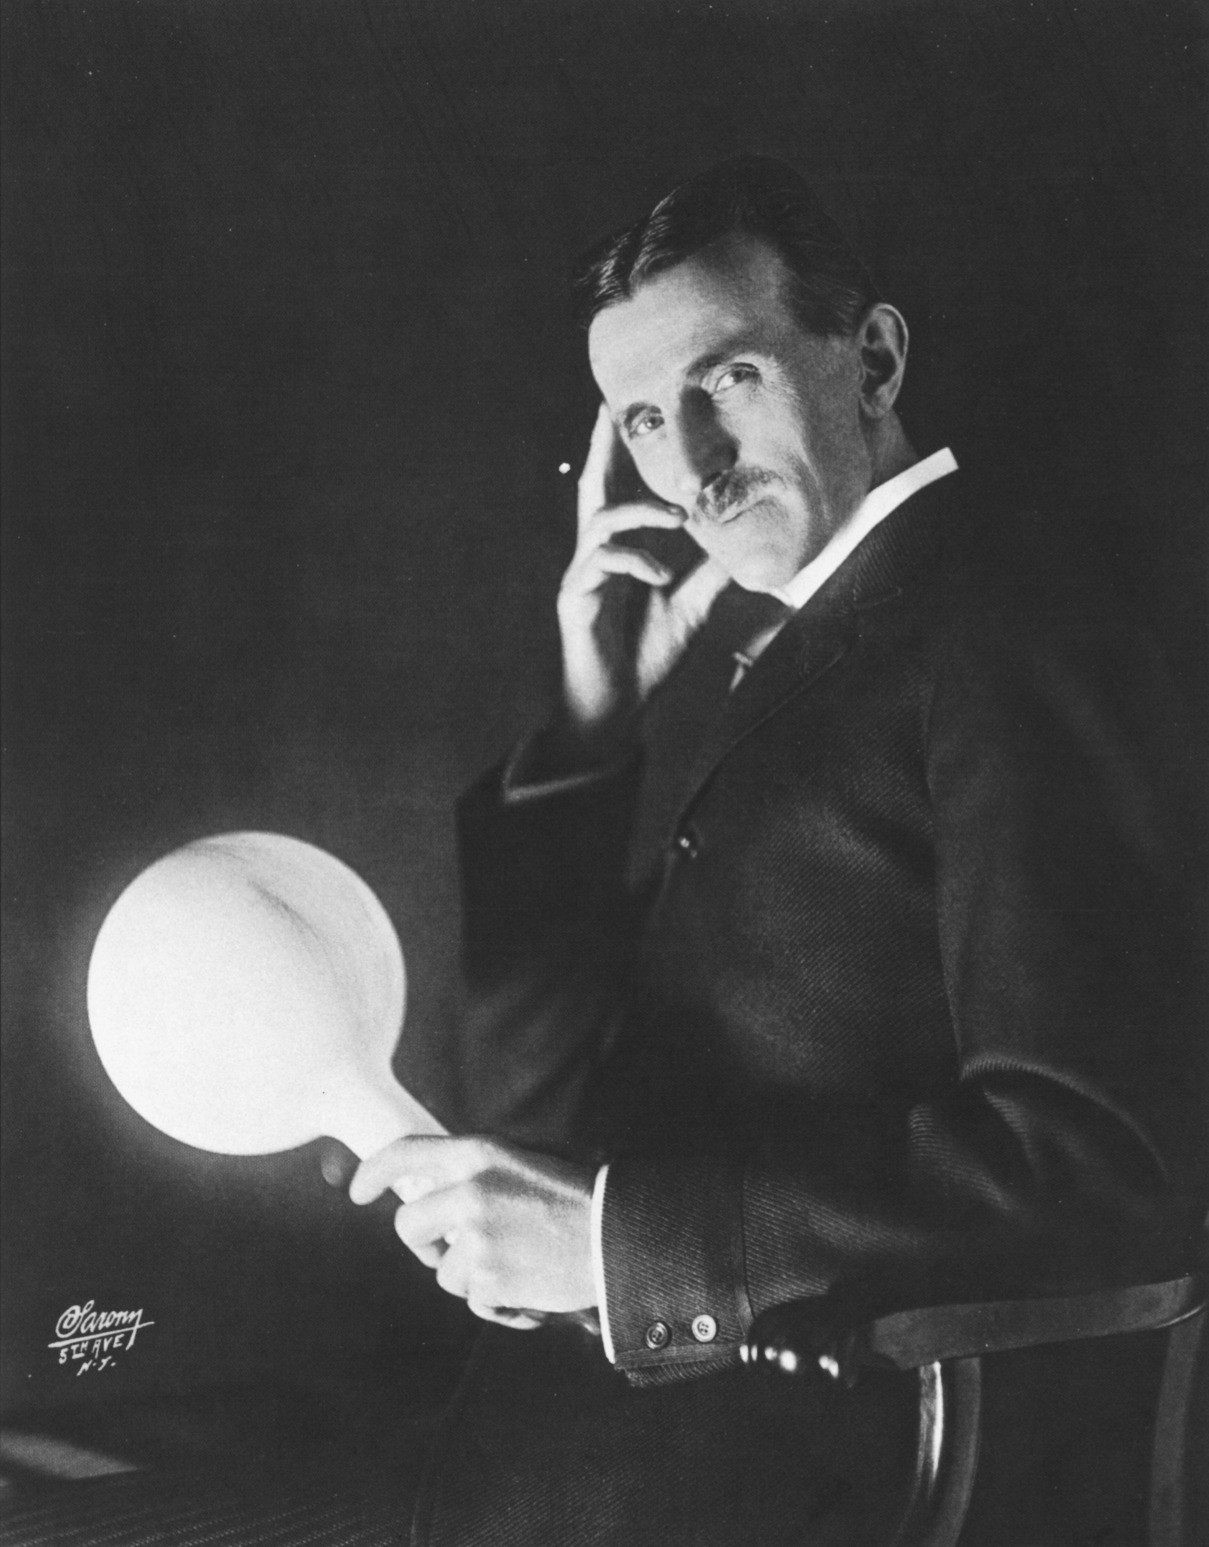 nikola tesla and the conspiracy against water powered cars the man who gave us our electrical grid never intended for our world to be choked wires to nikola tesla electricity wasn t something that flows like